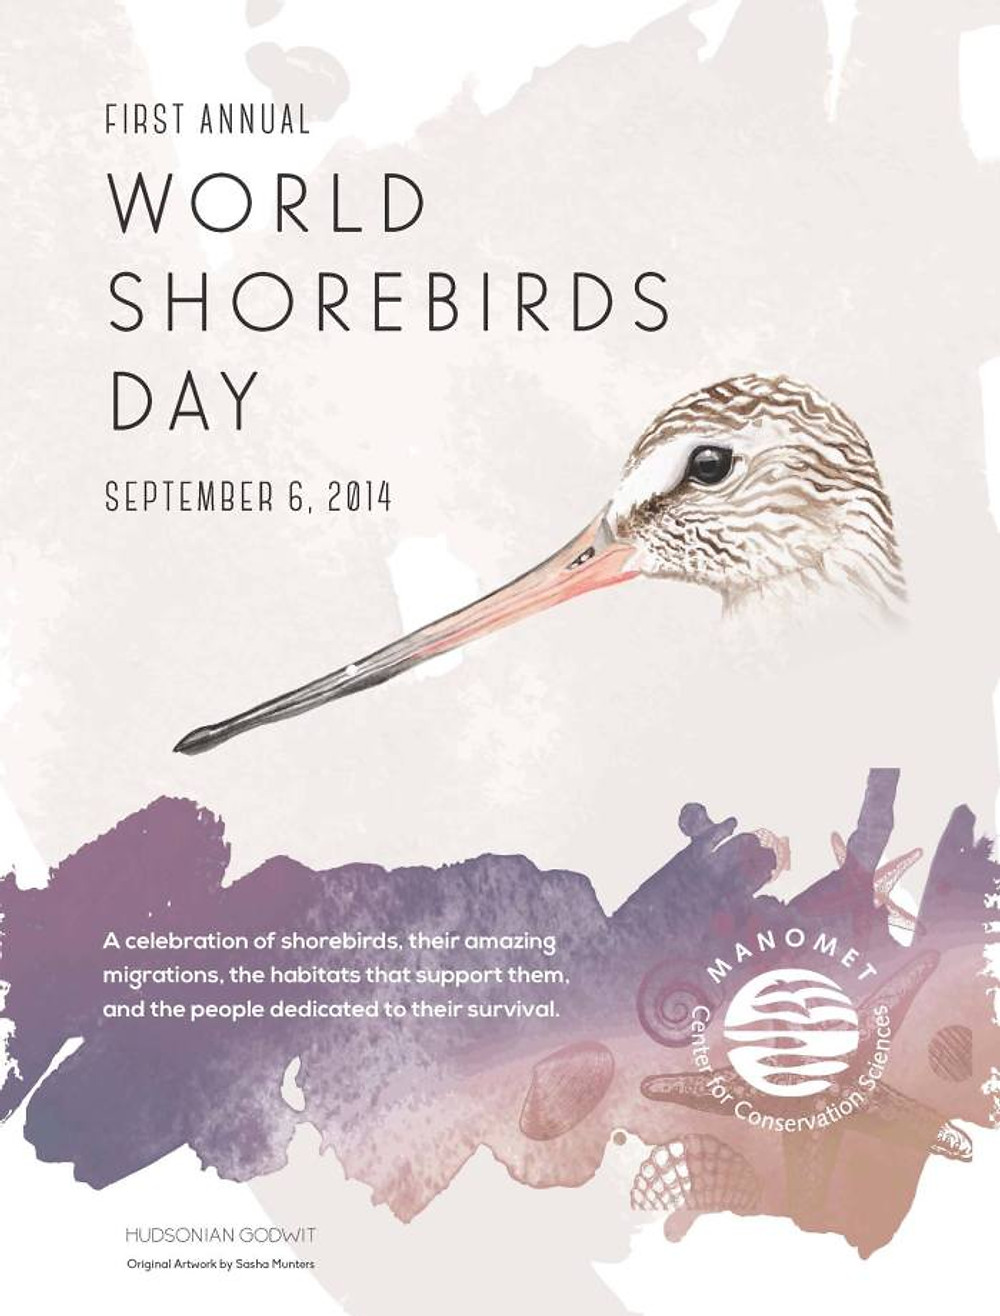 Manomet's poster for the very first World Shorebirds' Day created by Sasha Munters.